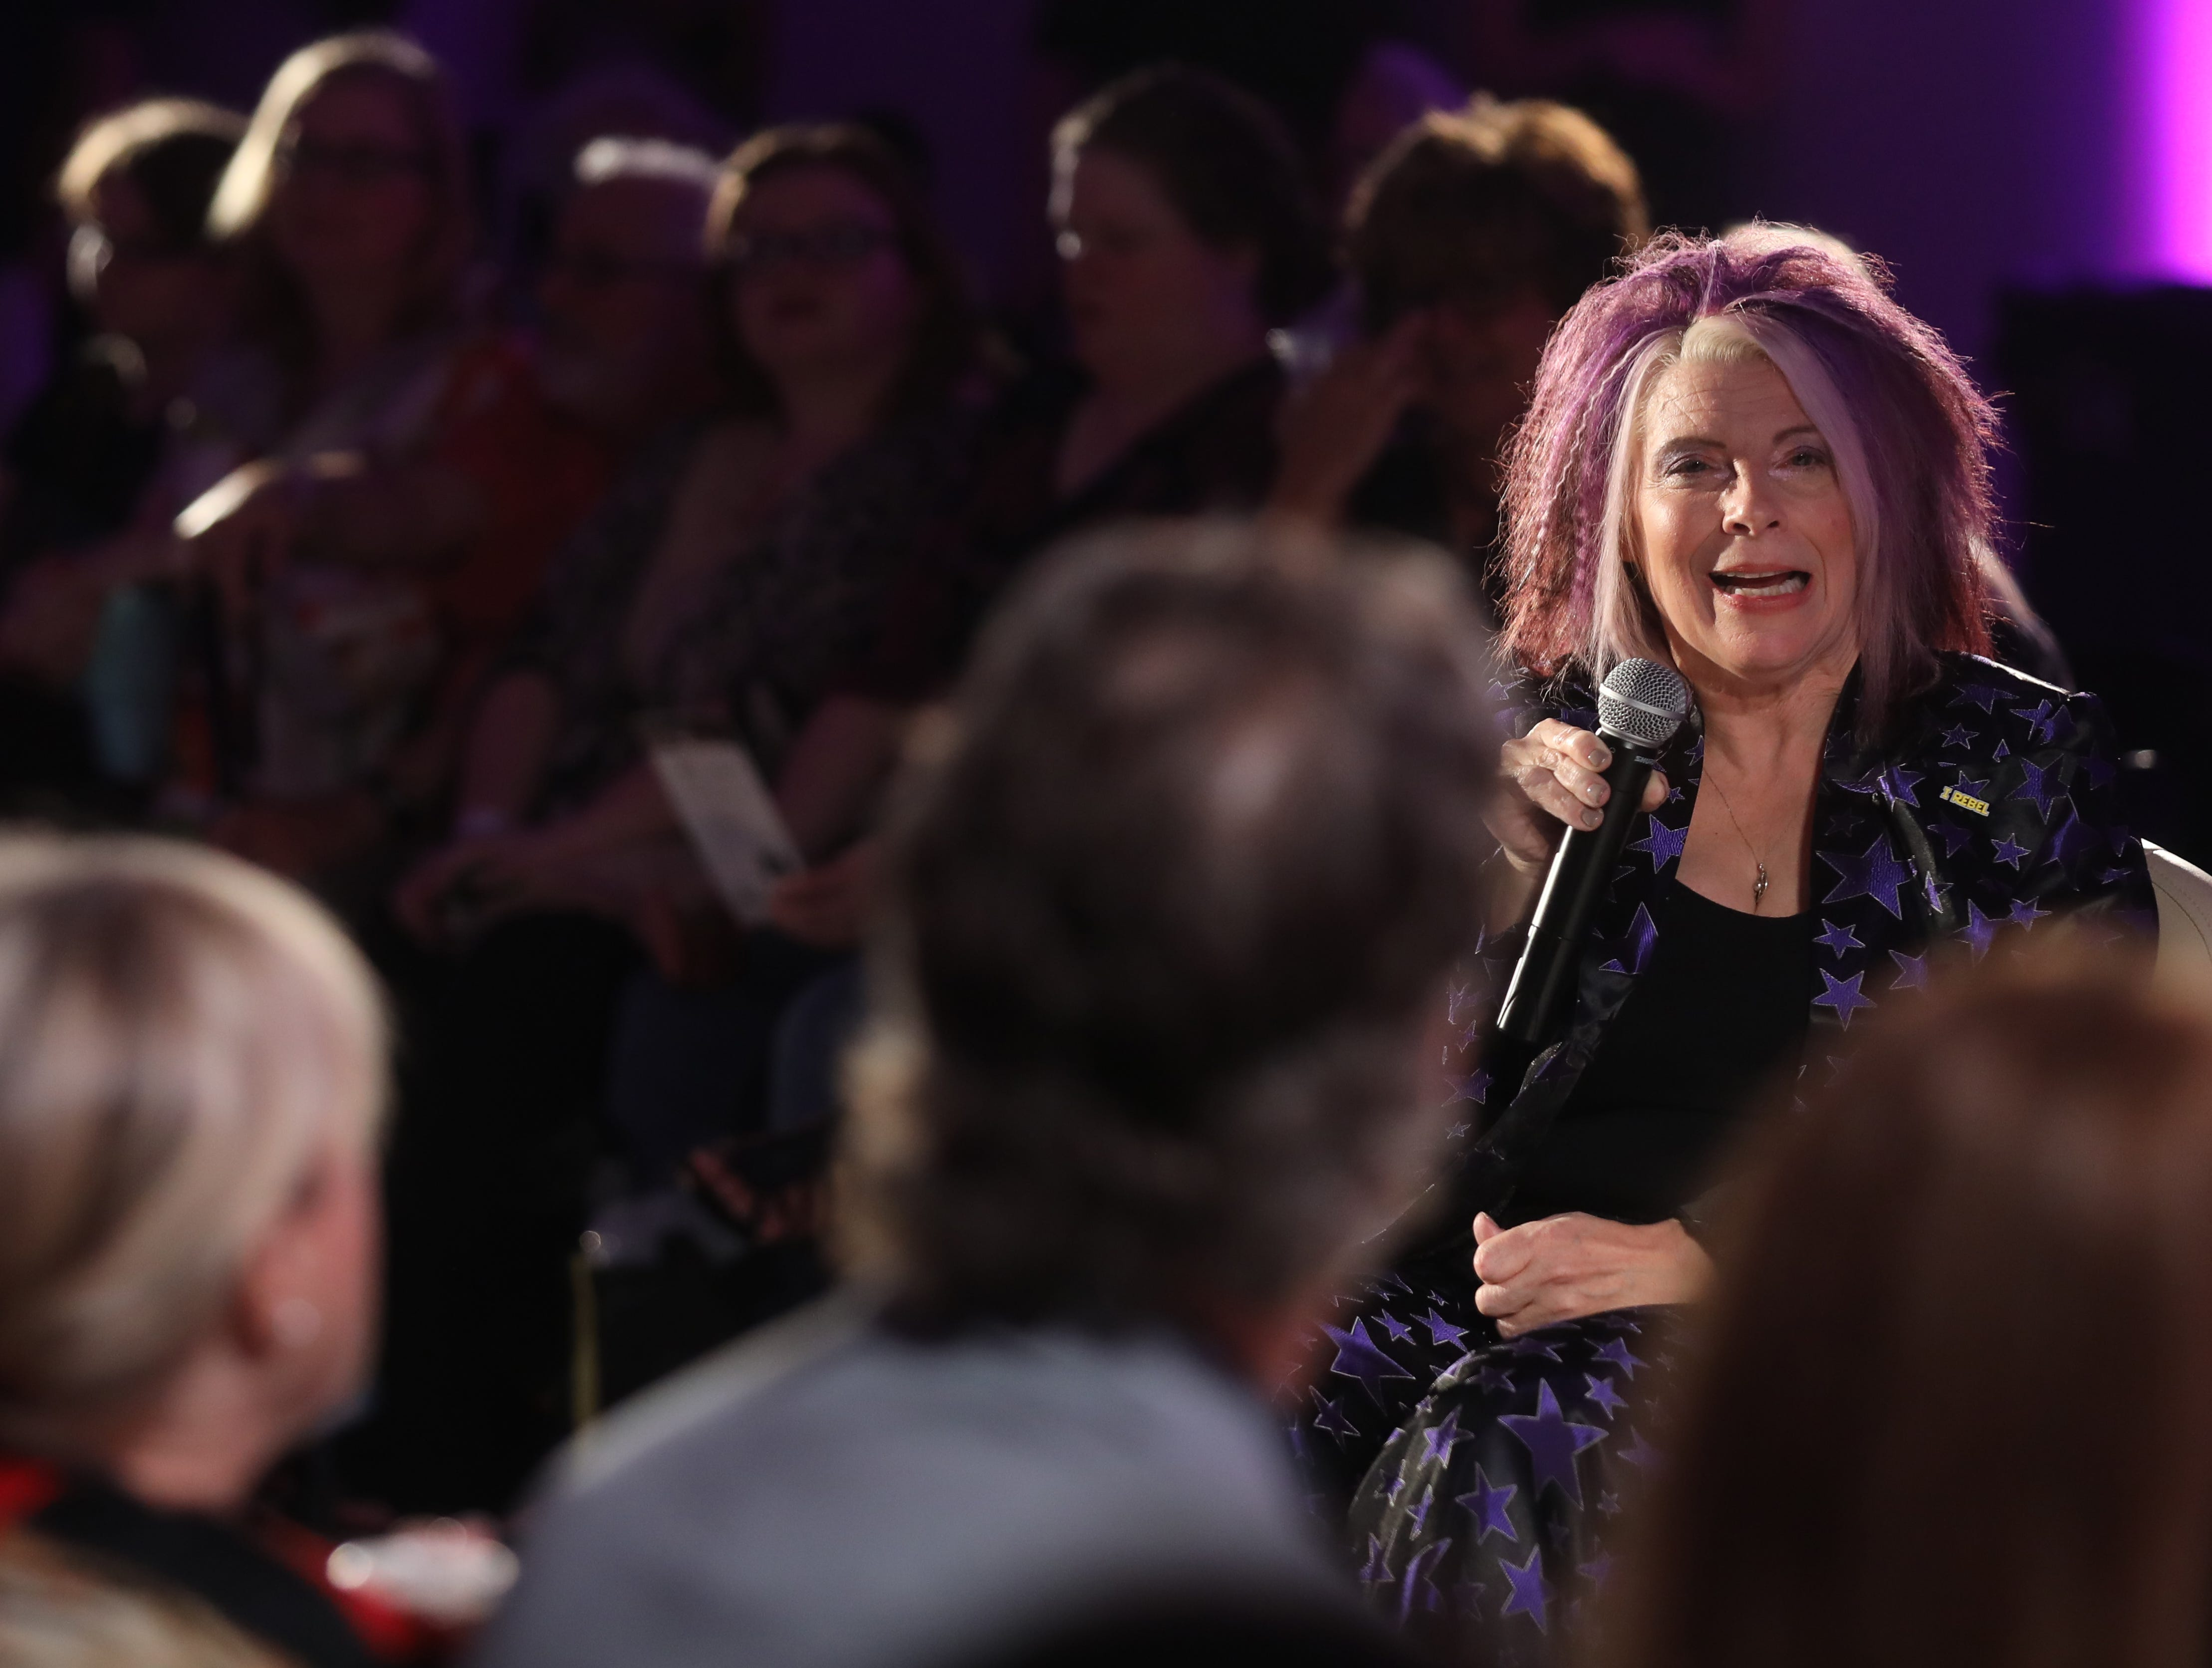 Boundless 2018 organizer Alicia Searcy speaks before the start of the fashion show held at Studio 615 on Saturday, September 8, 2018.